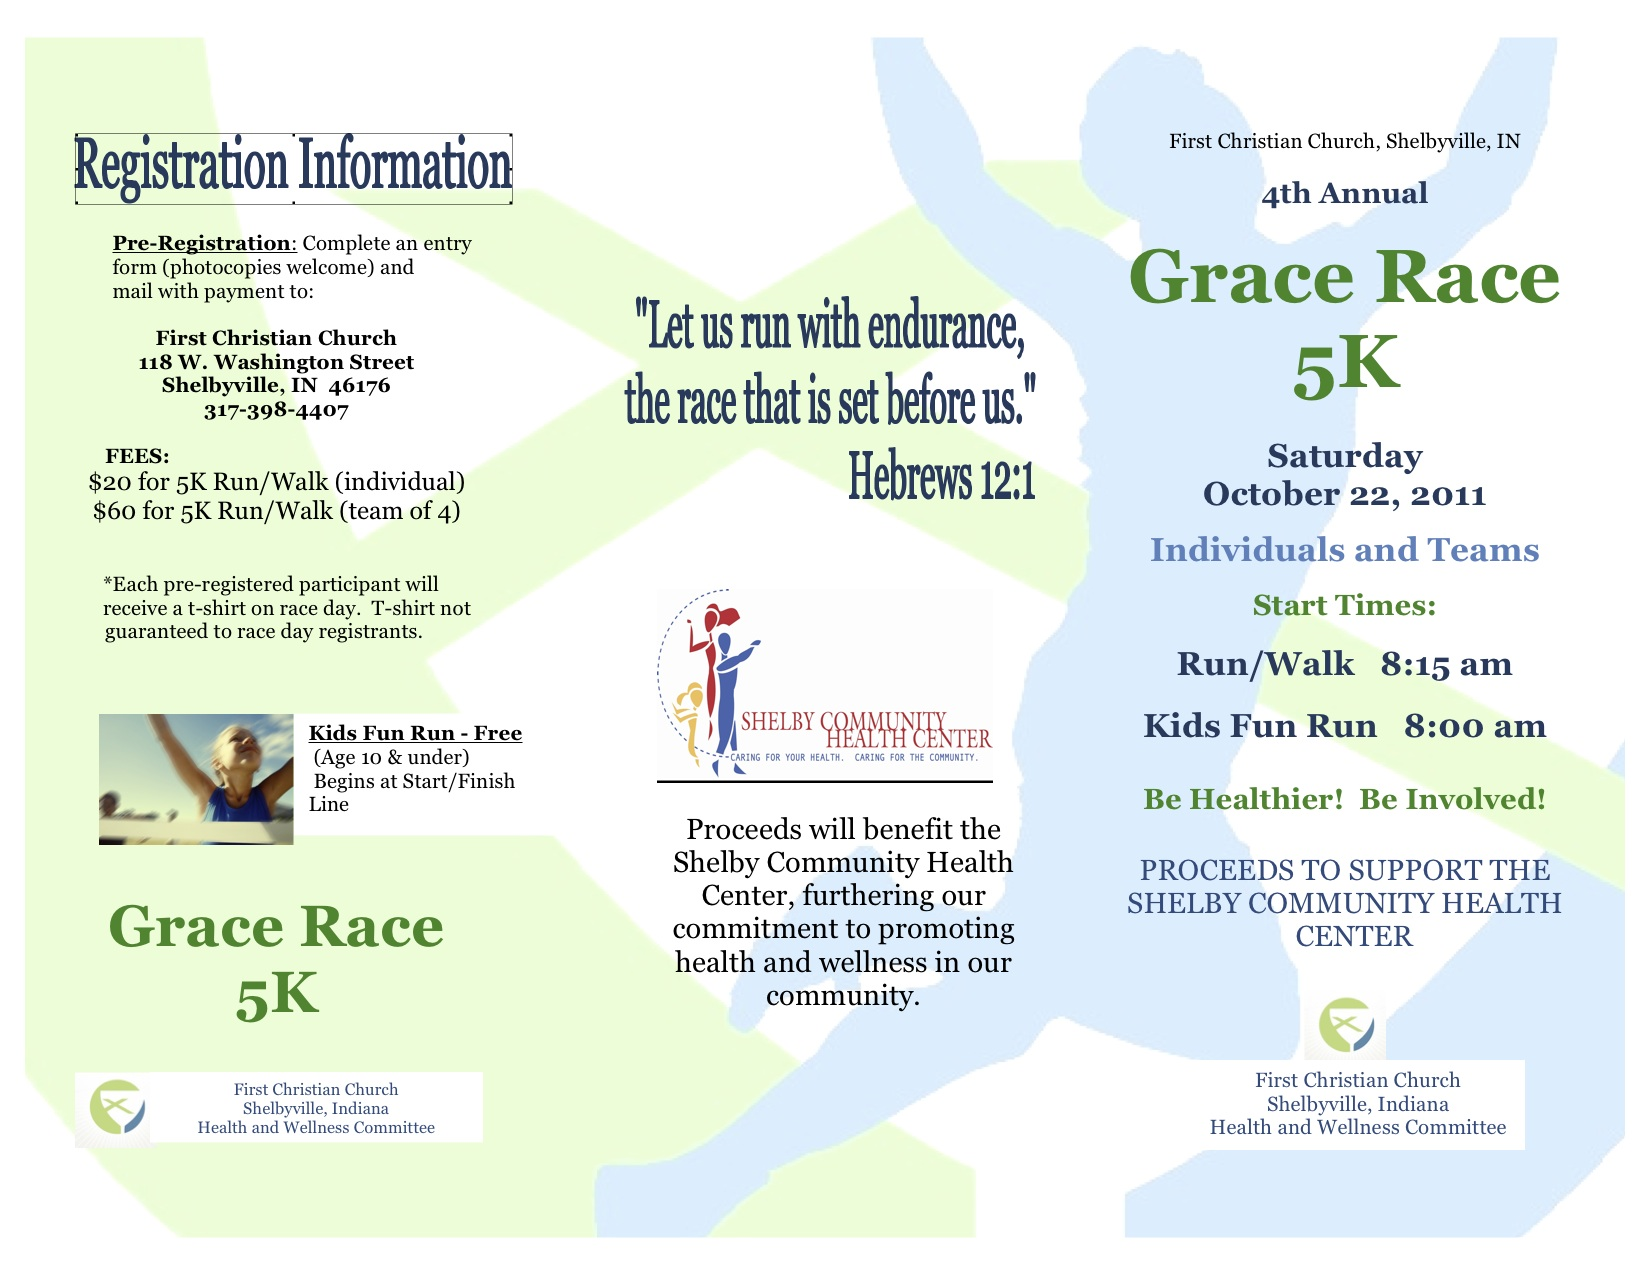 2011 Grace Race Brochure pg. 1